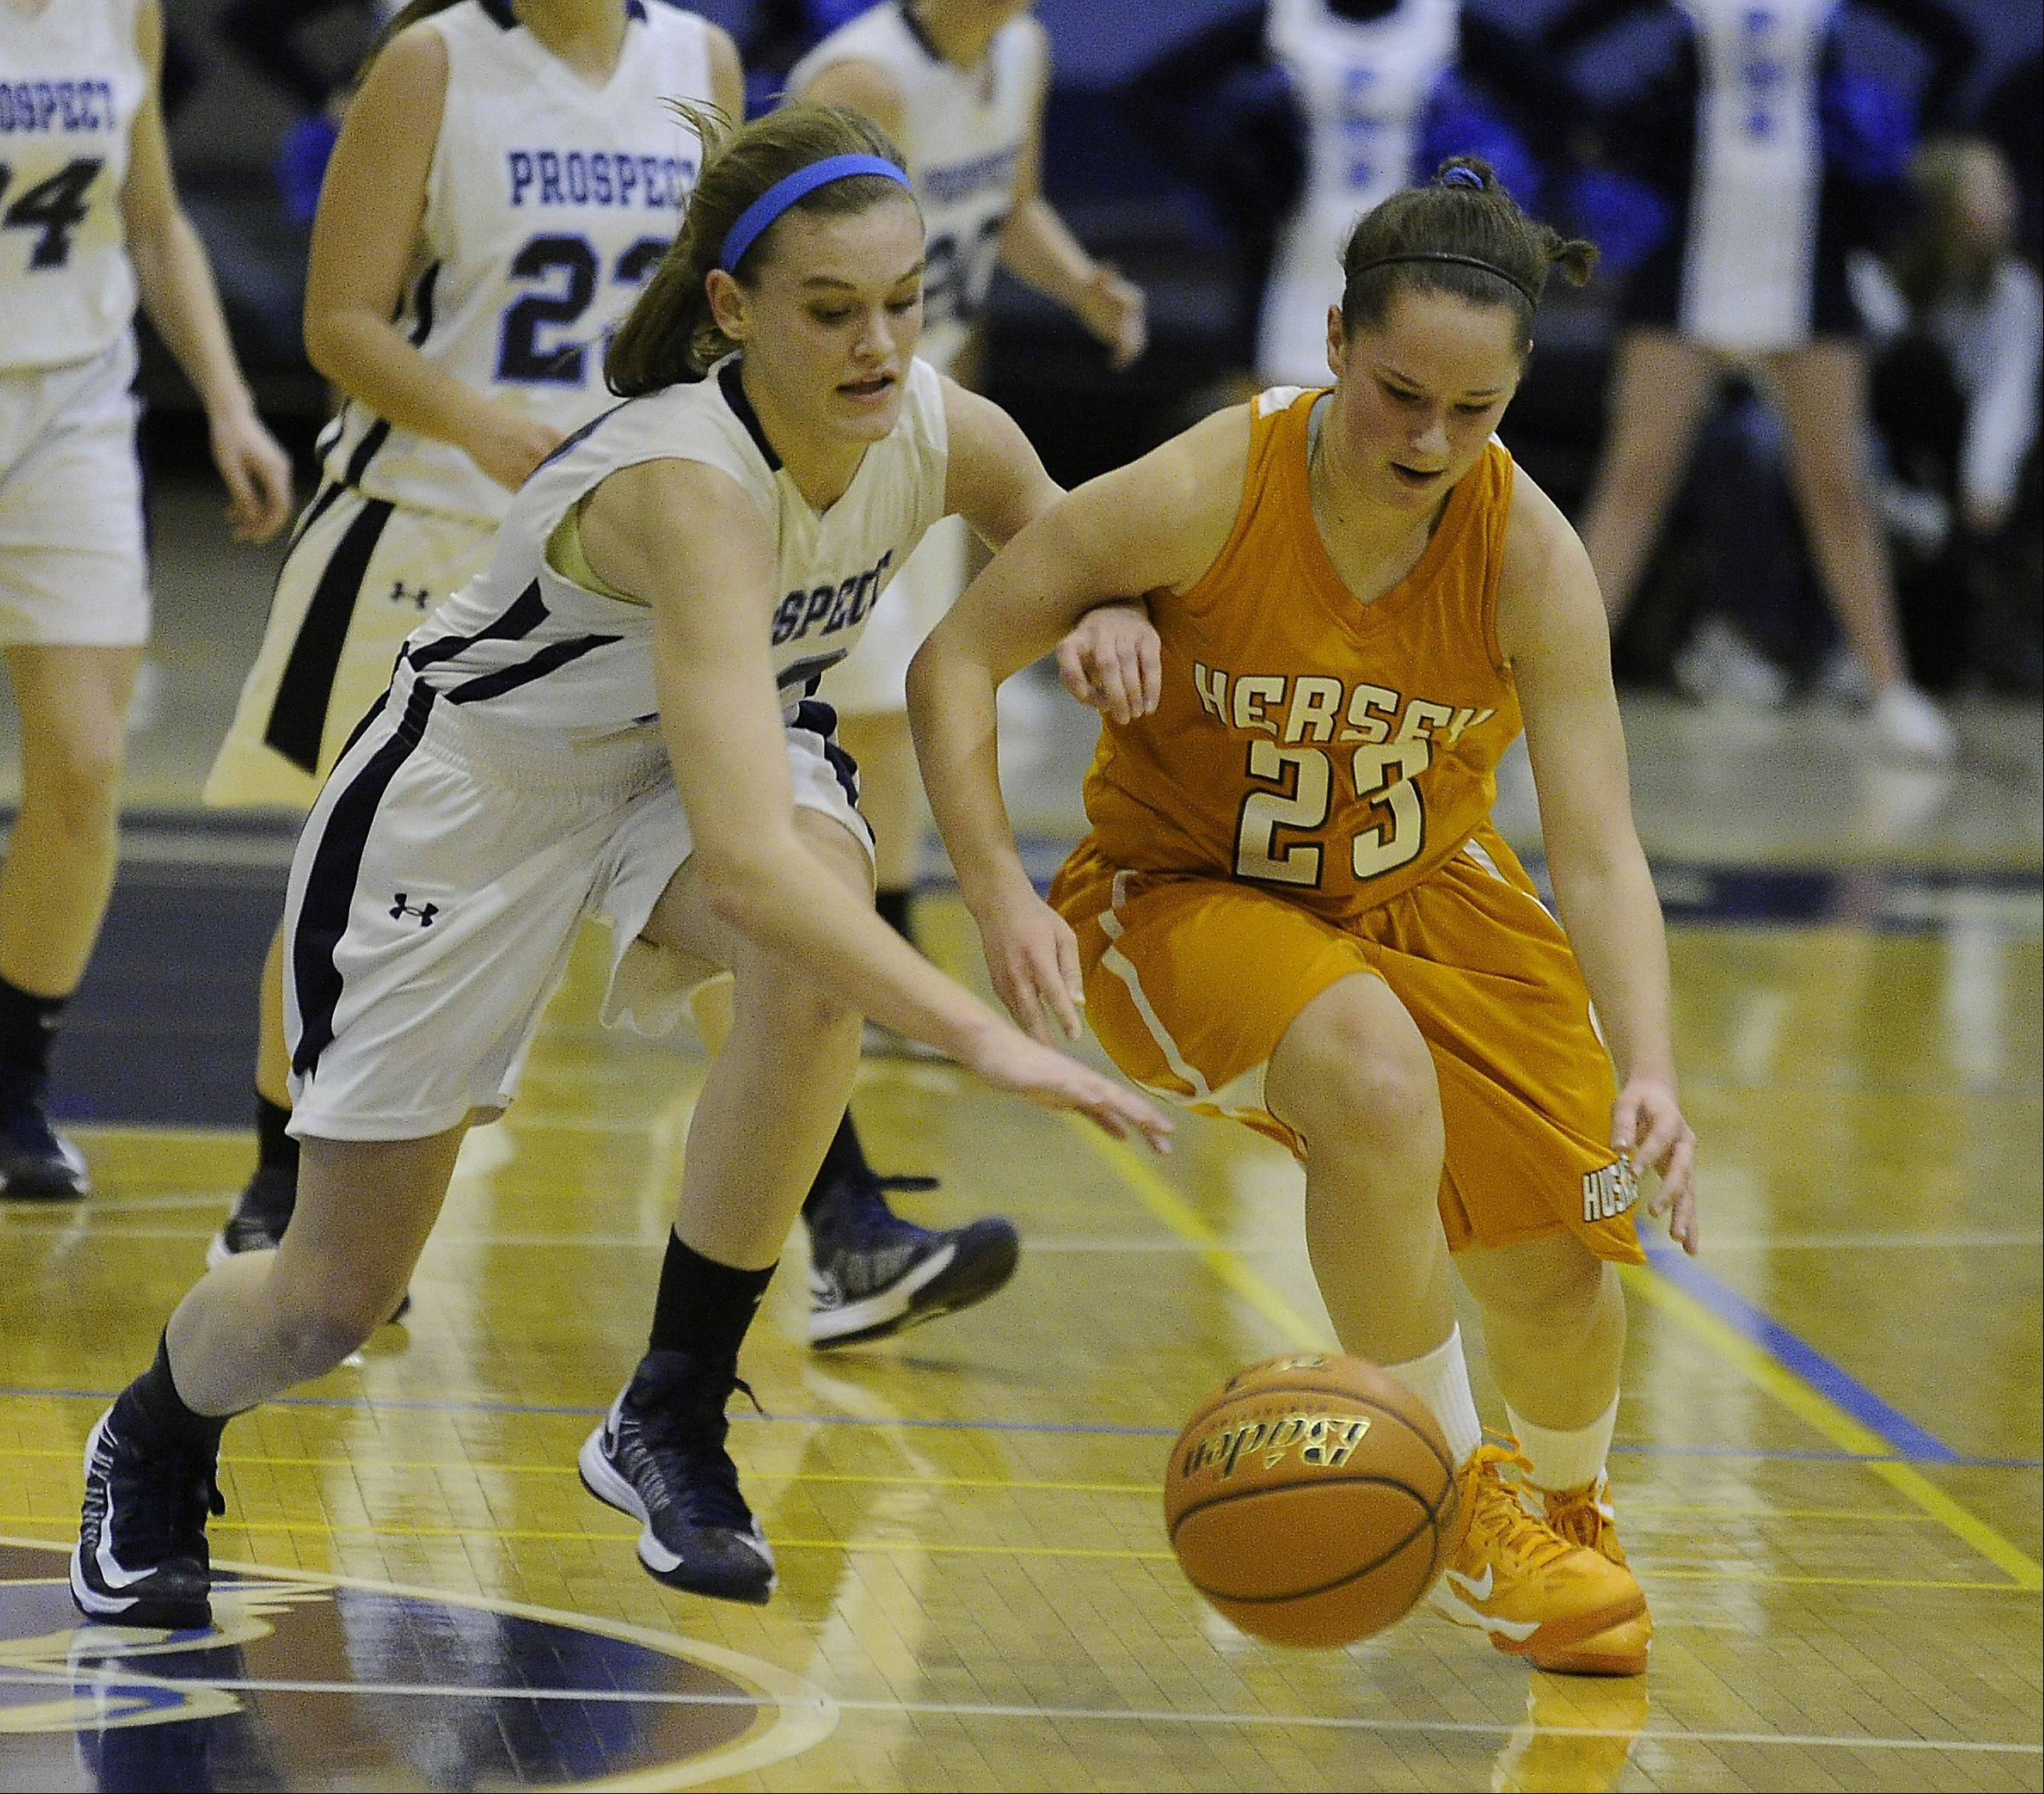 Prospect's Taylor Will chases down a loose ball with Hersey's Casey Weyhrich in the first half at the girls varsity game at Prospect High School on Friday.